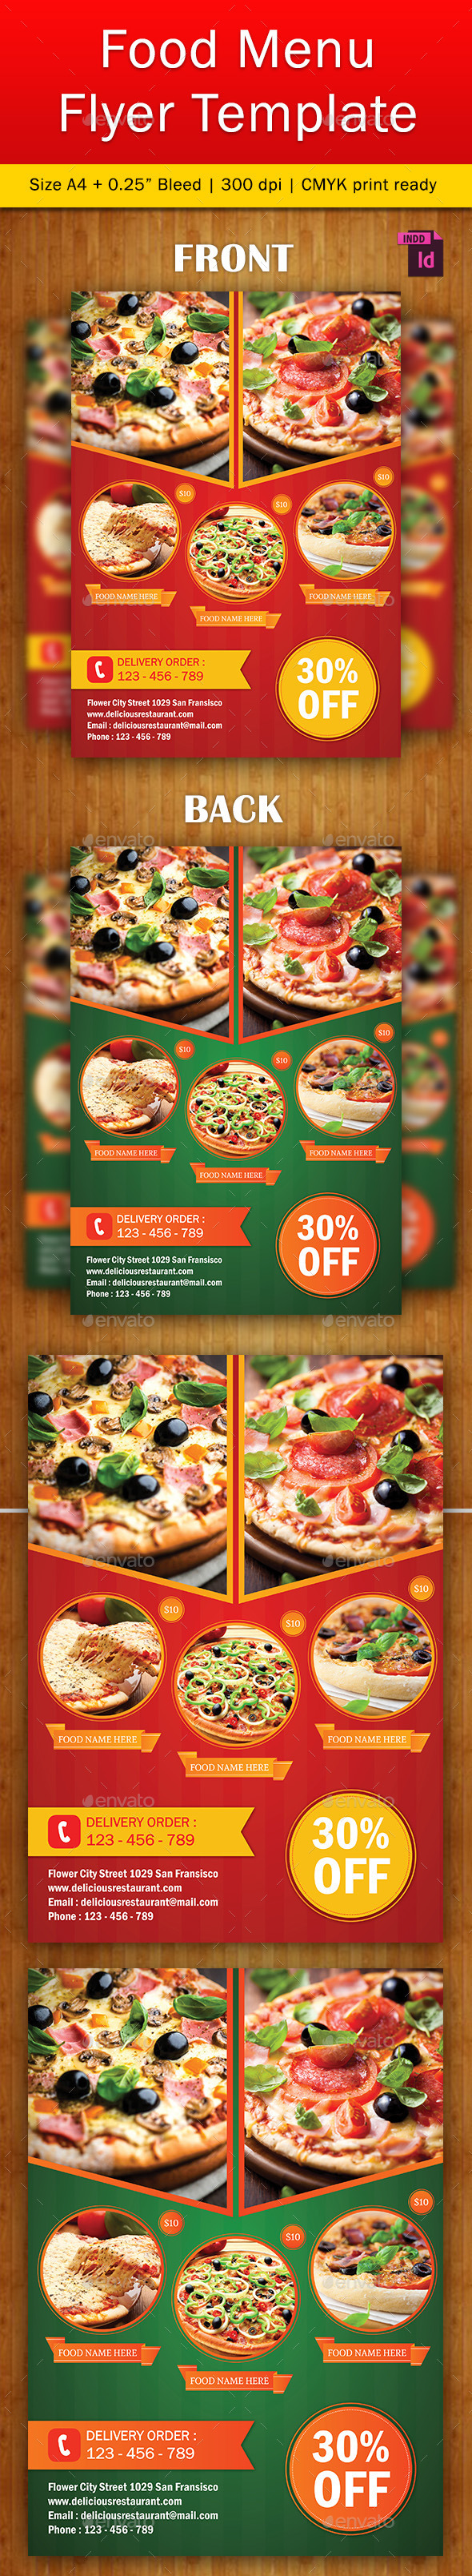 Food Flyer Template Vol. 4